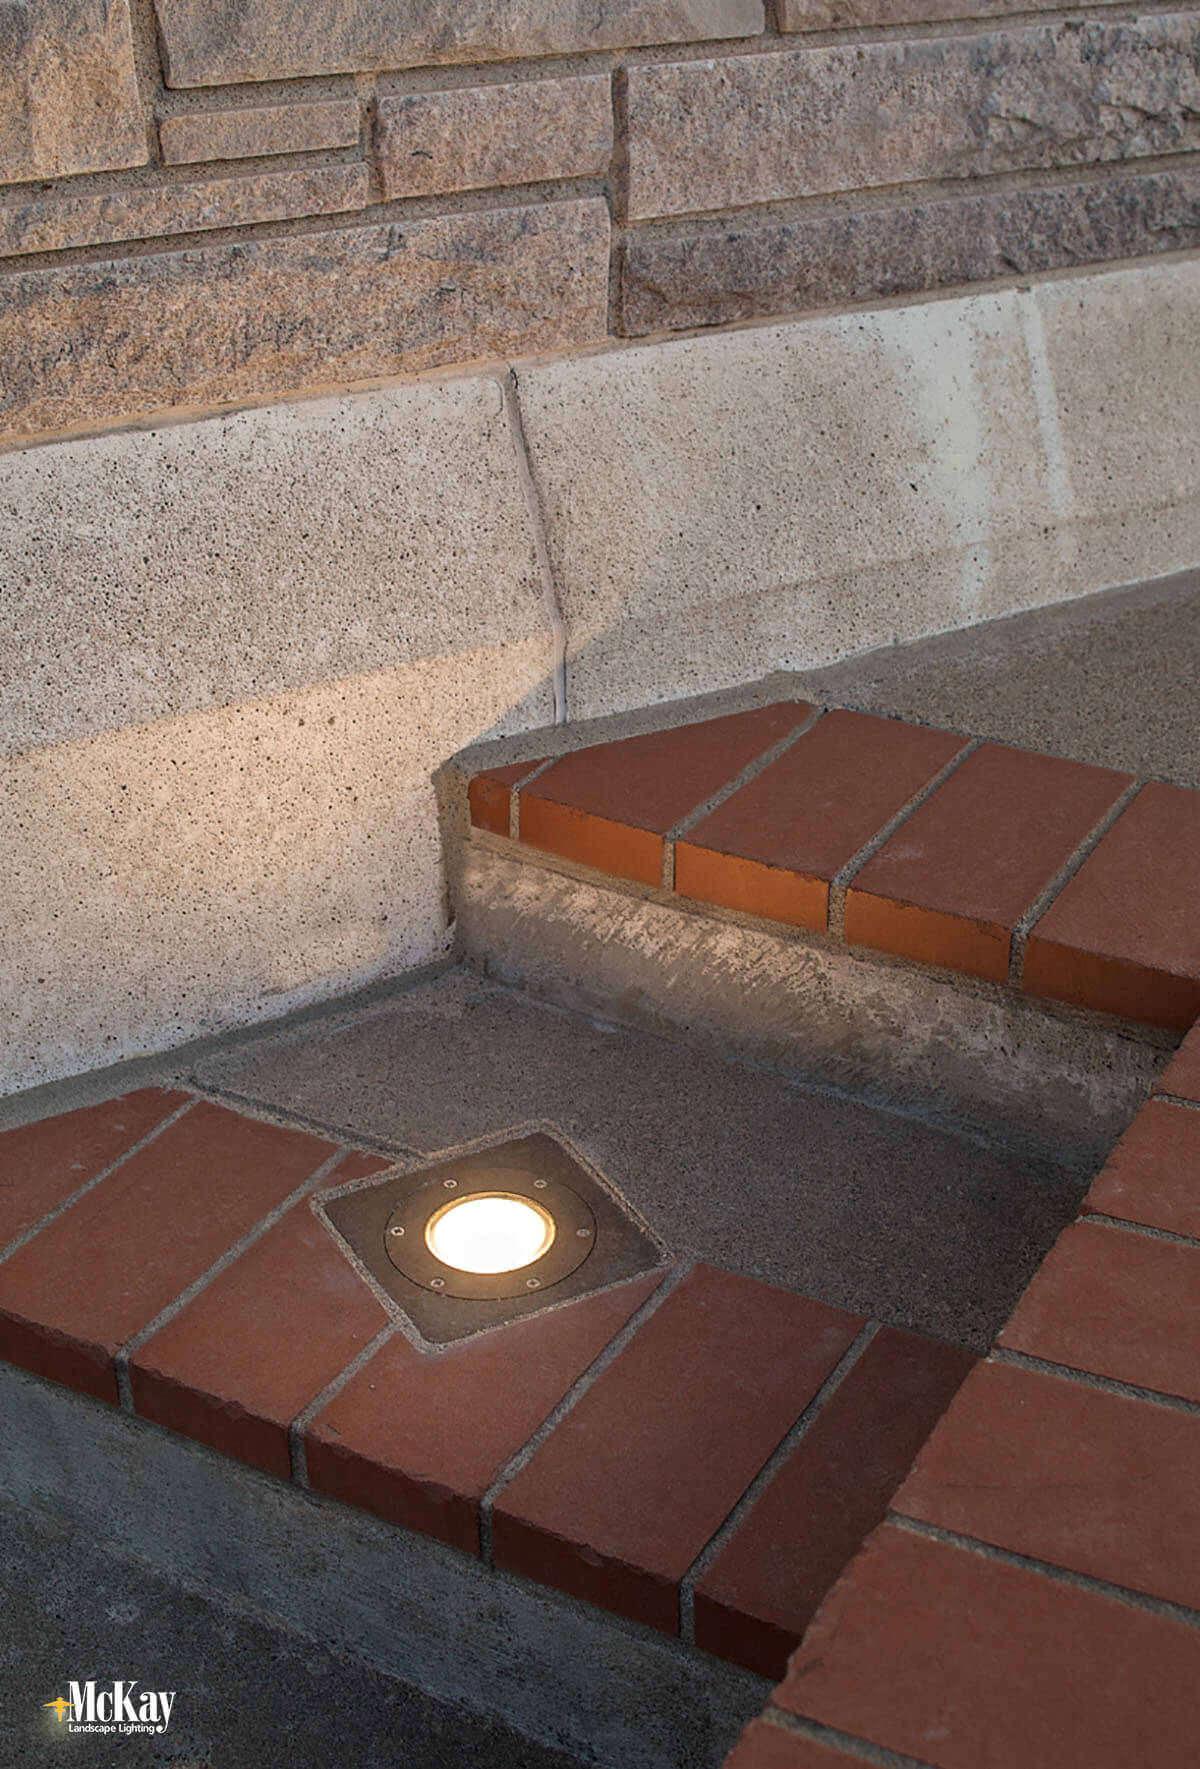 The building is surrounded by concrete which can sometimes make installing well lights difficult. Click to learn more about the commercial landscape lighting design... | McKay Lighting - Omaha, Nebraska